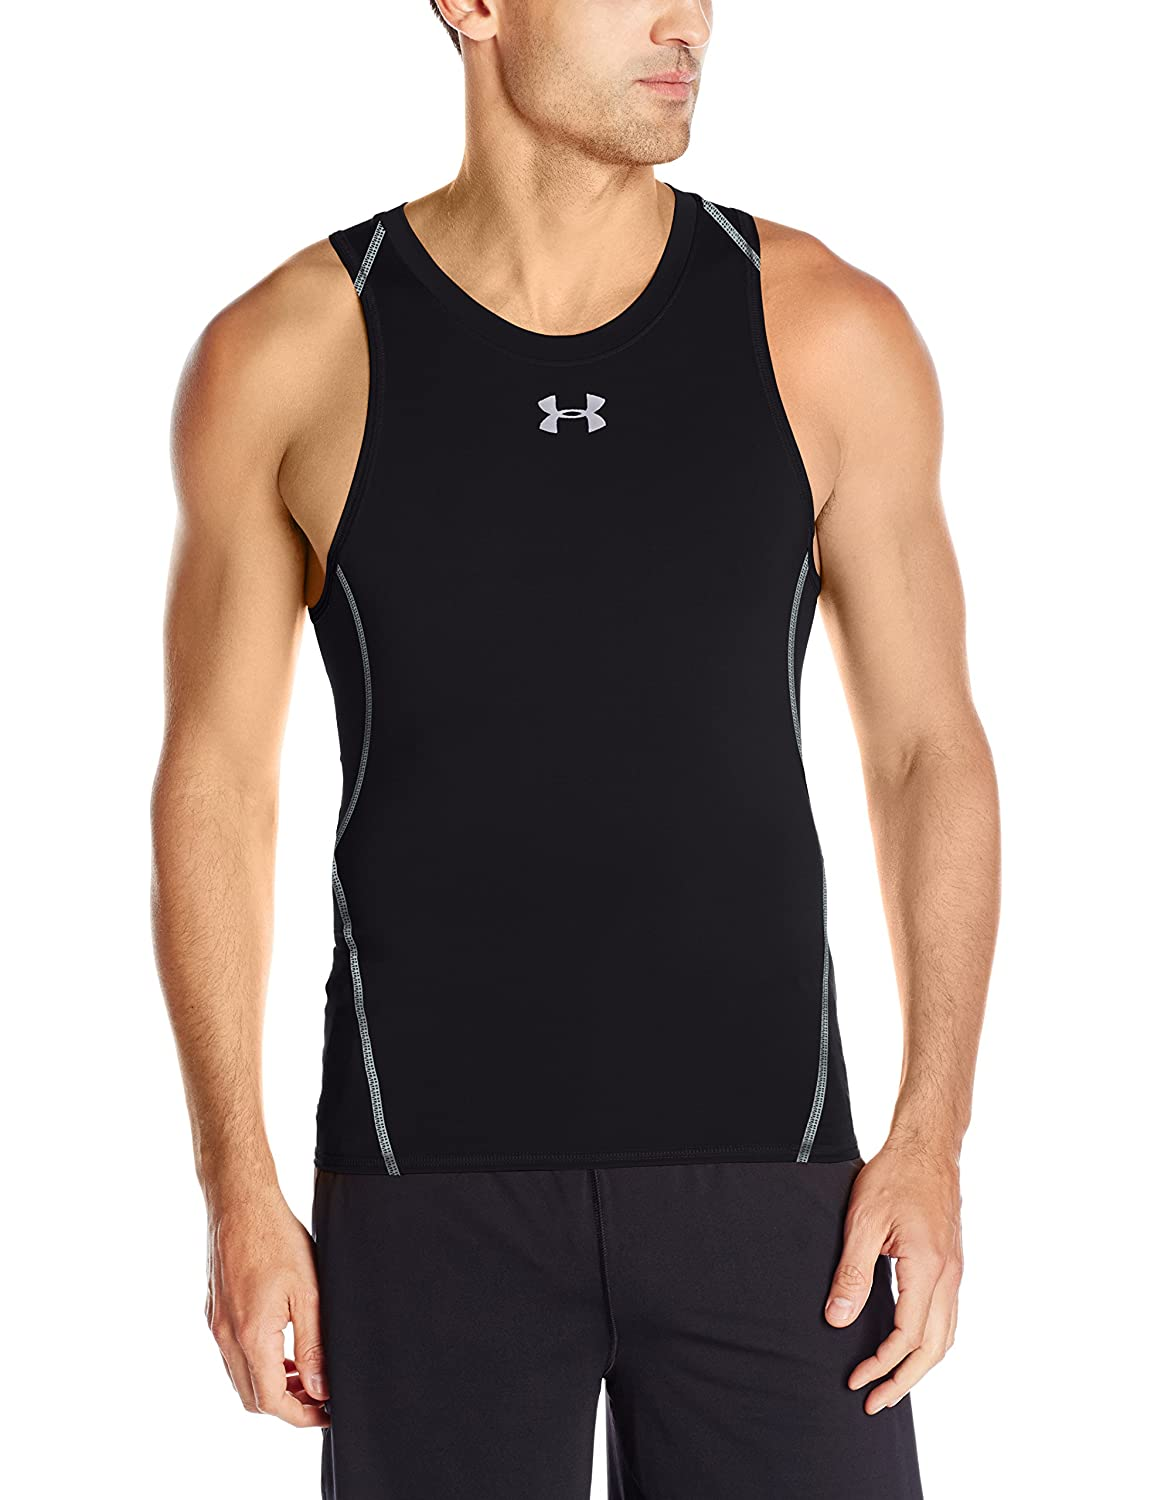 Shop men's tank tops in comfy cotton fabrics. Great to wear alone or as an undershirt, these men's tank tops are comfortable and long-lasting!